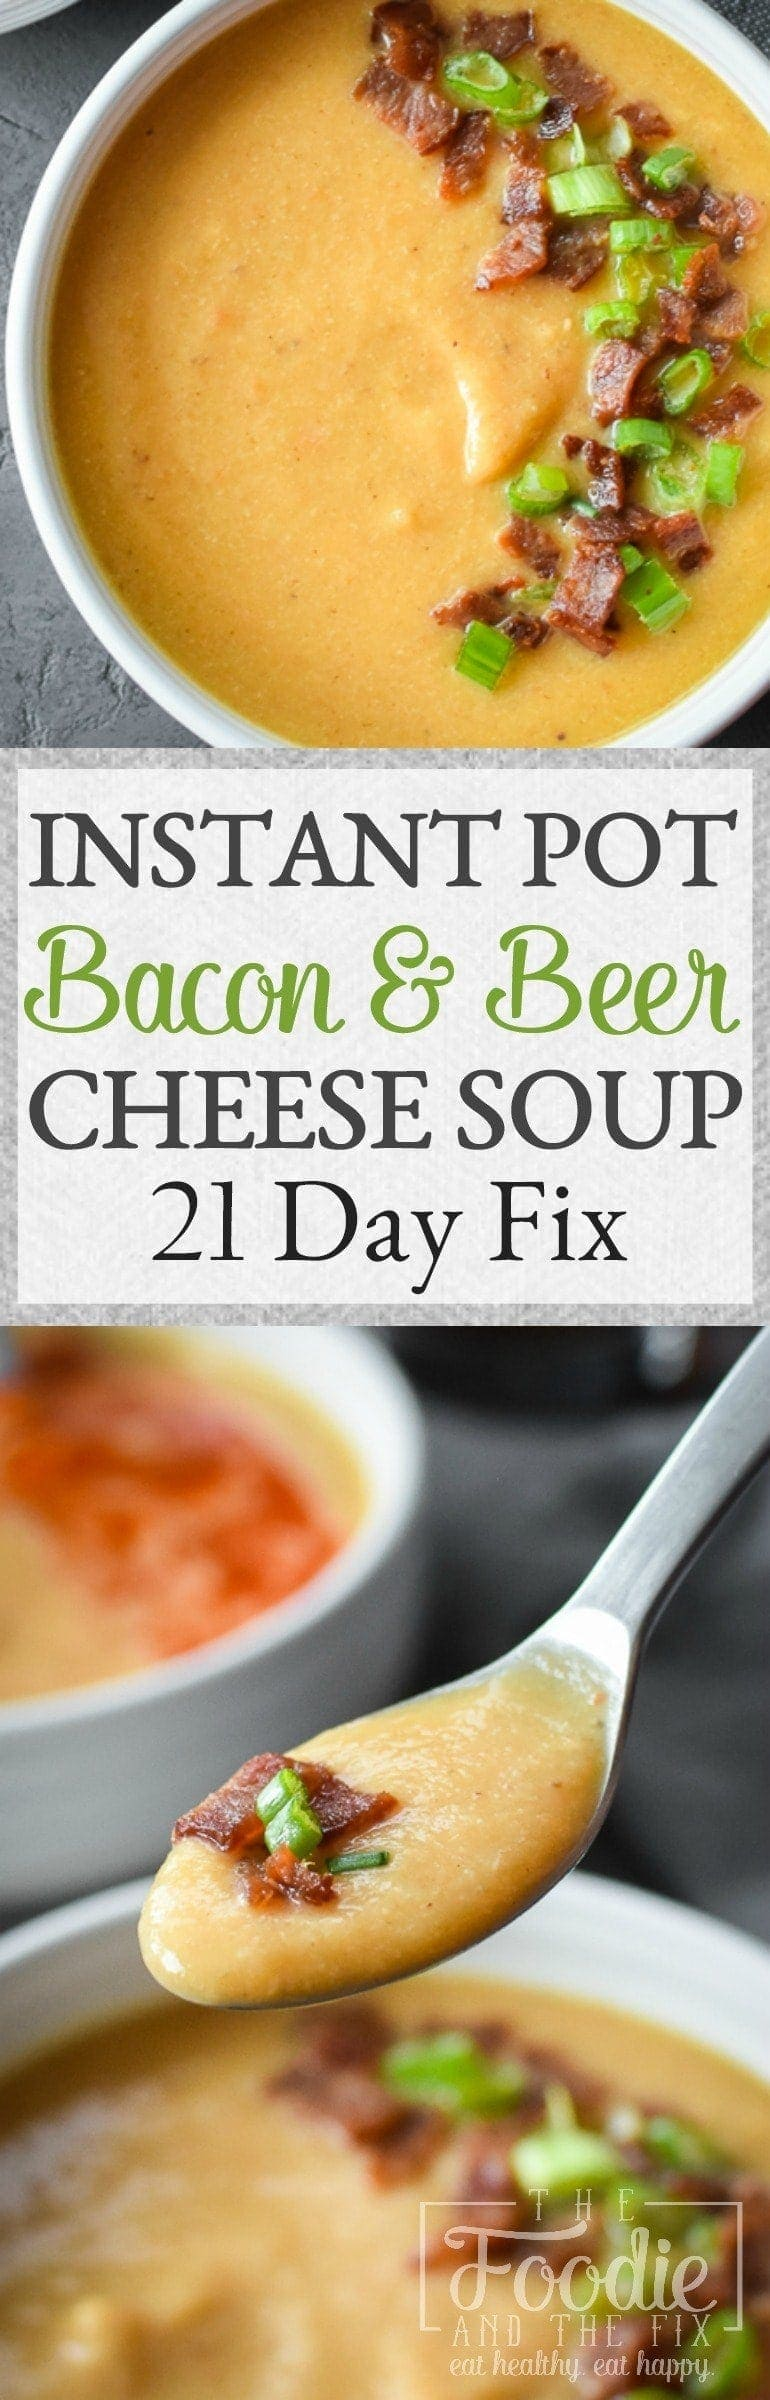 Instant Pot Bacon And Beer Cheese Cauliflower Soup 21 Day Fix The Foodie And The Fix